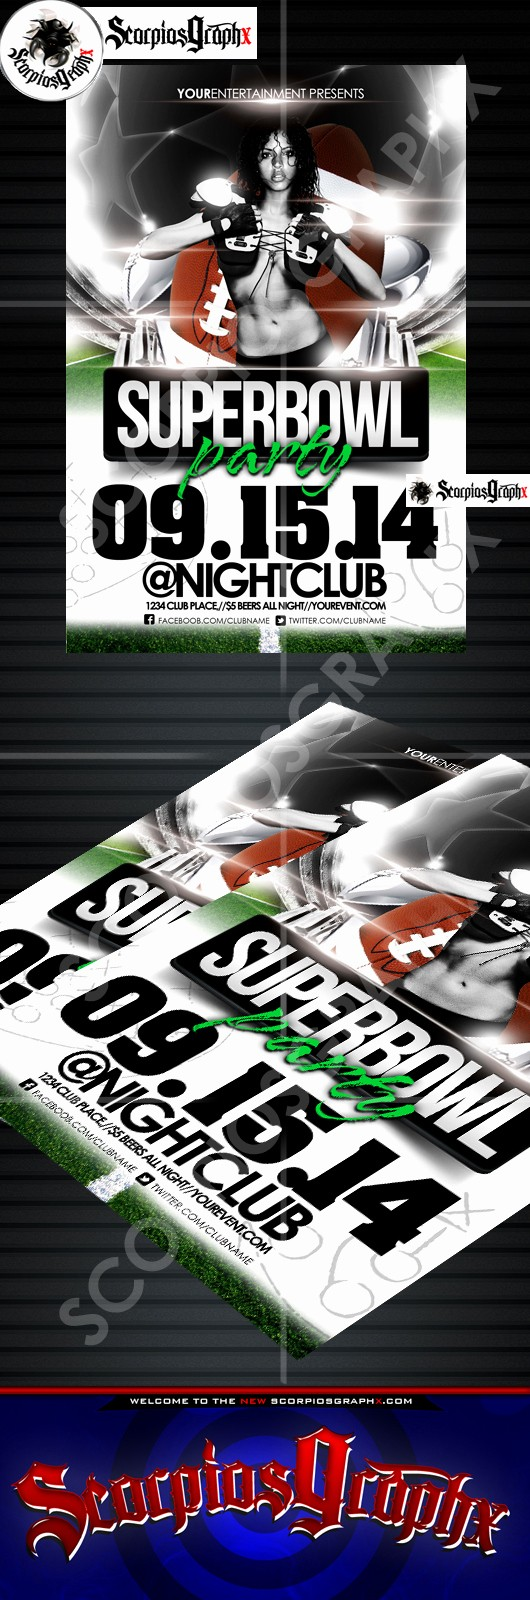 Super Bowl Party Flyer Template Beautiful Superbowl Flyer Template by Scorpiosgraphx On Deviantart